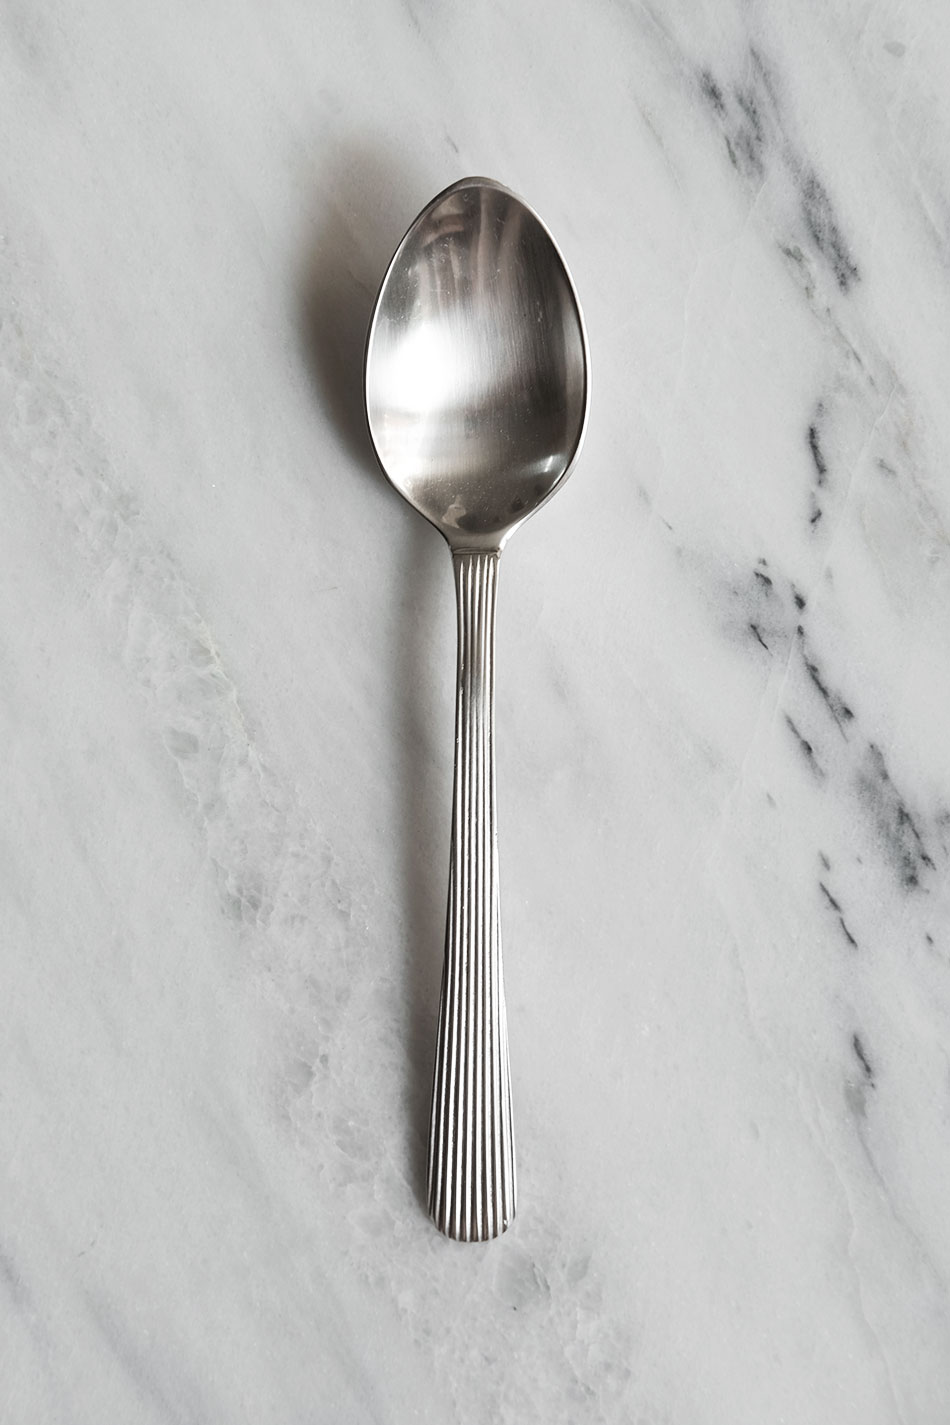 The Atlantic Dessert spoon